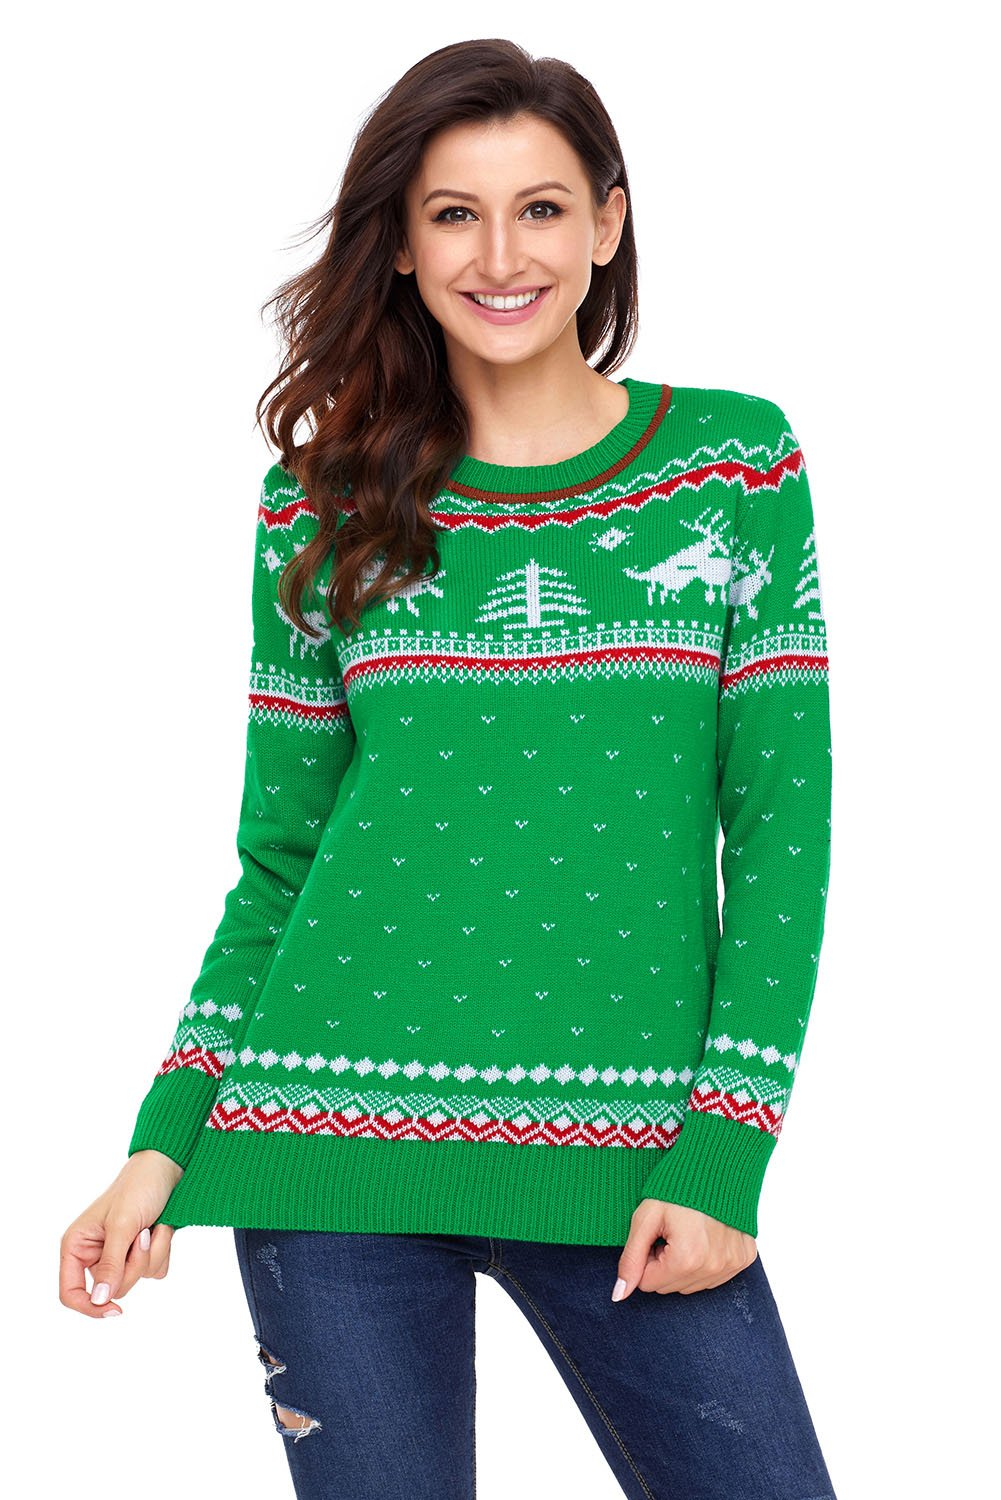 Green Christmas Reindeer Knit Sweater Winter Jumper